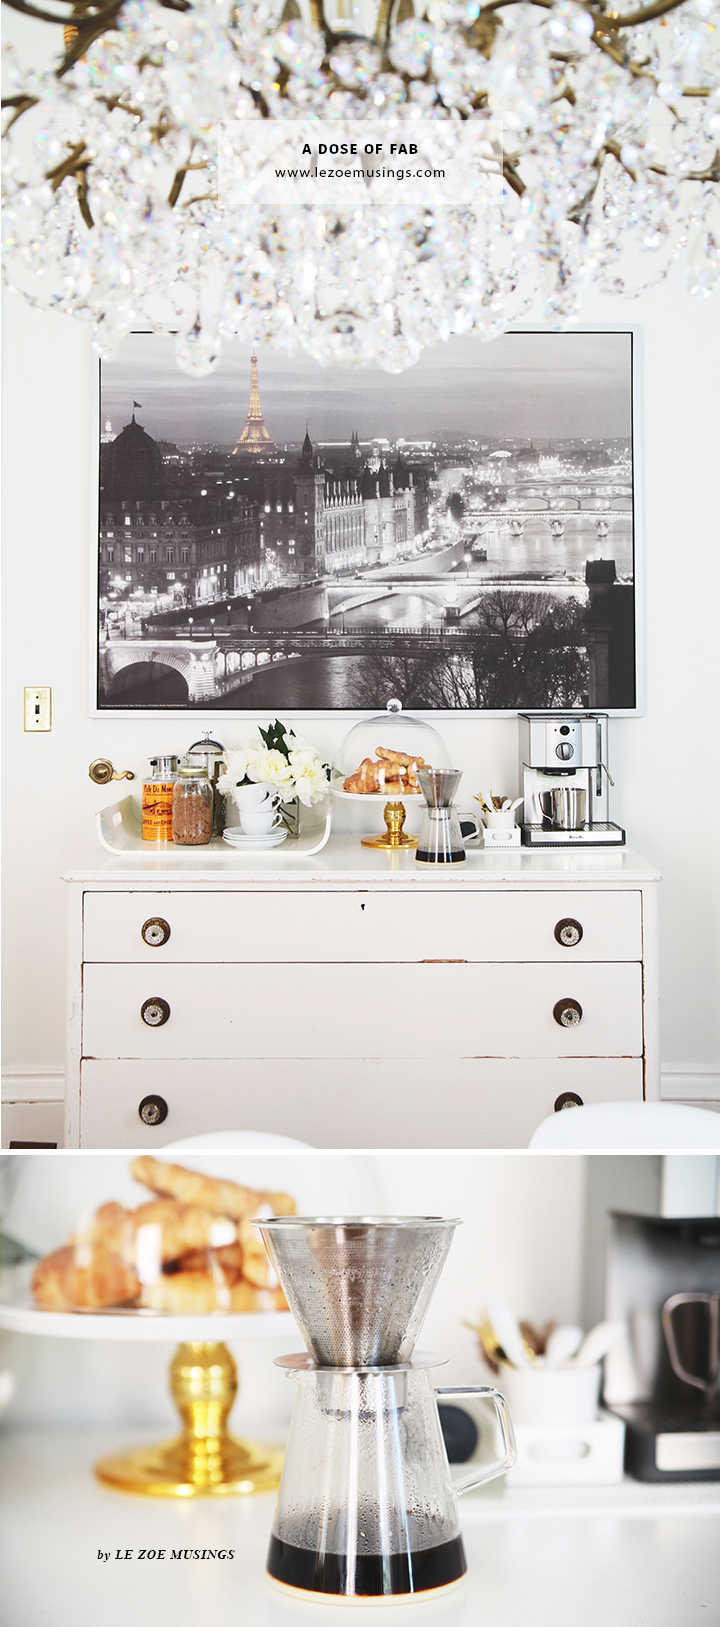 Home Cafe Station by Le Zoe Musings